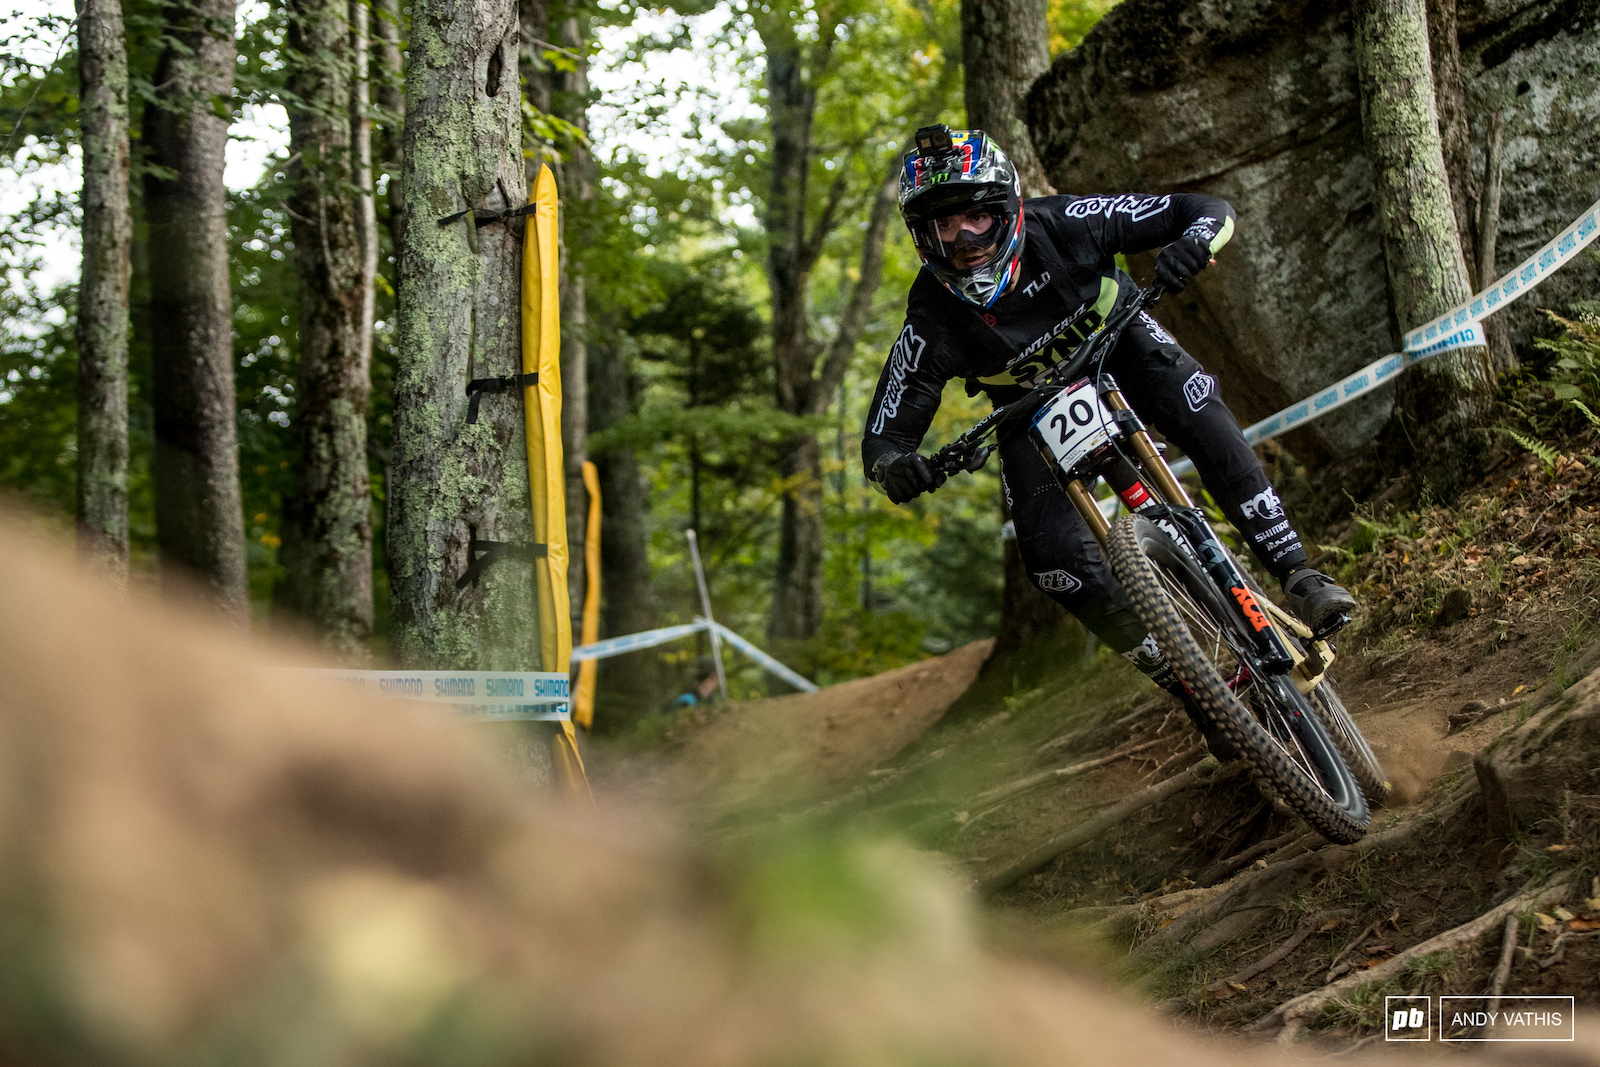 Luca Shaw found ways to smooth out the rock gardens and qualified sixth.